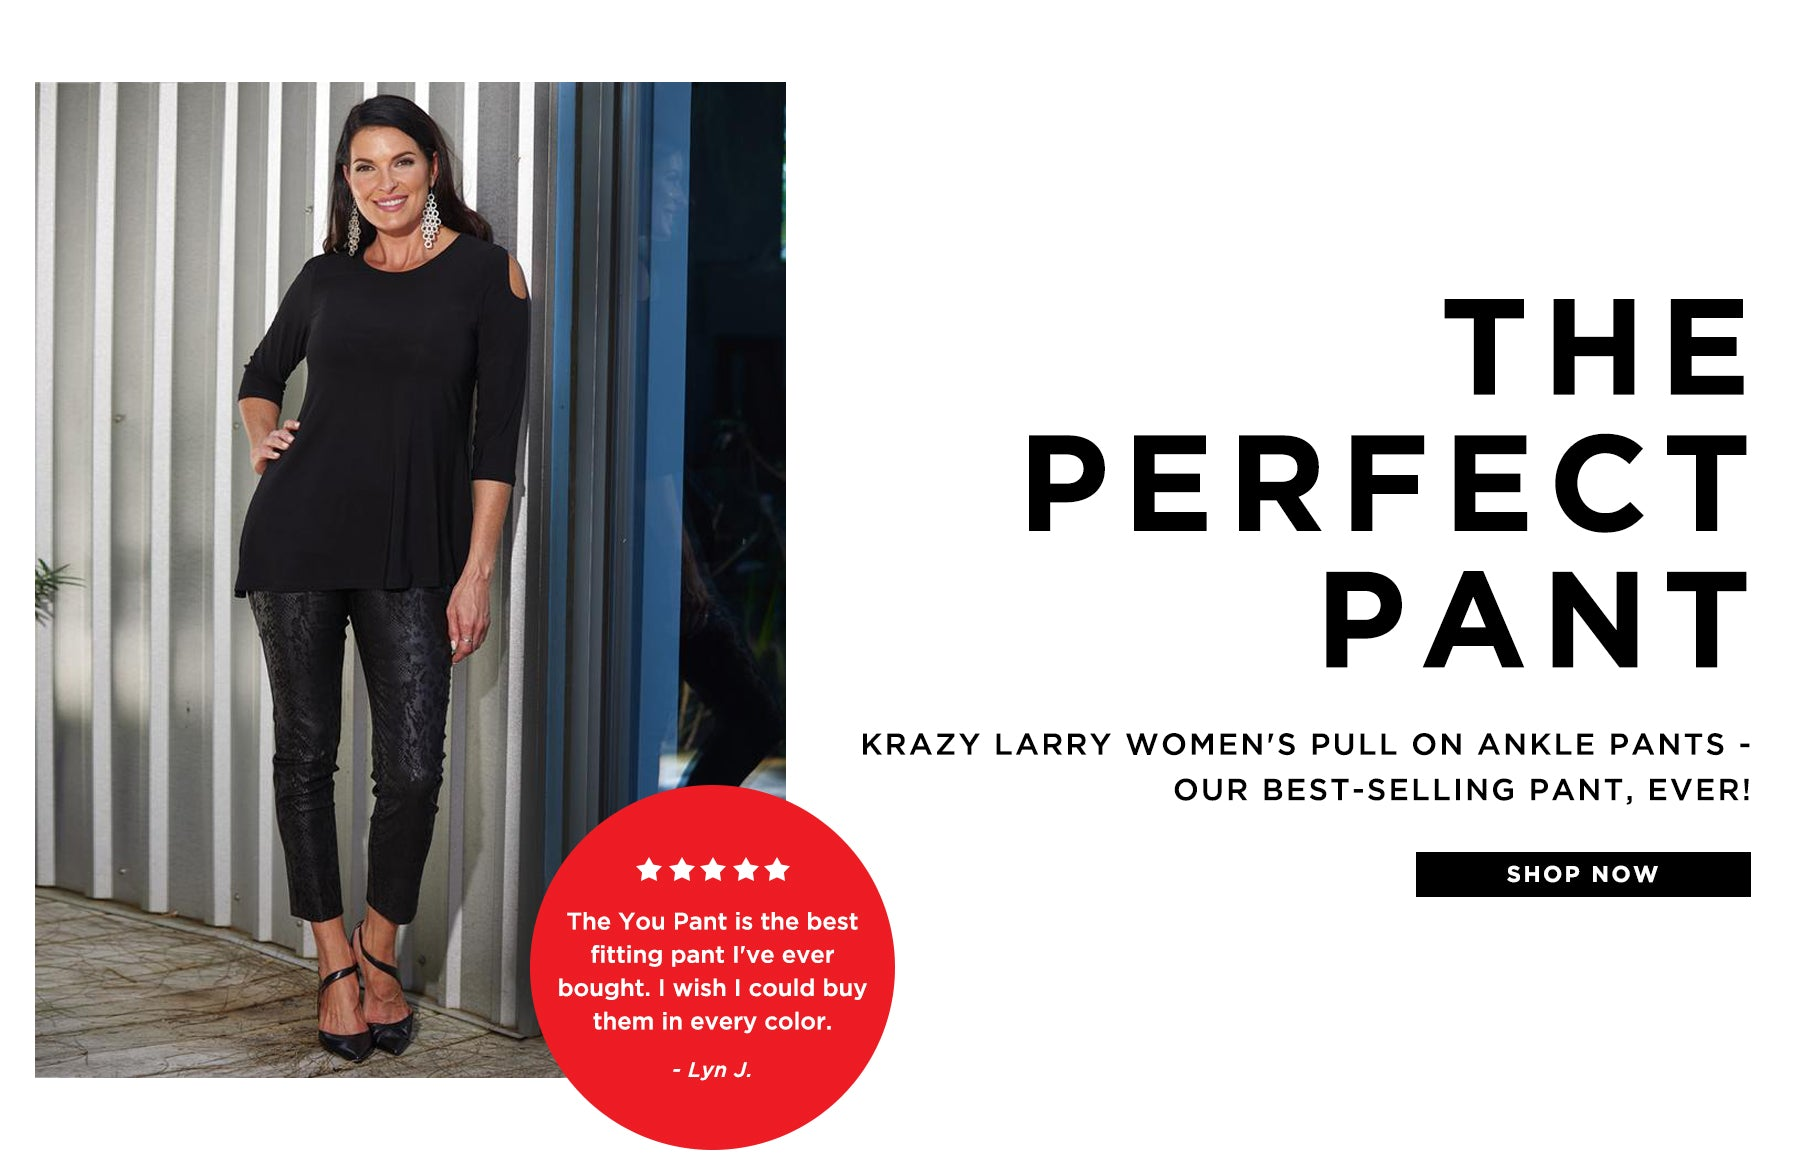 The you pant: our best-selling pant